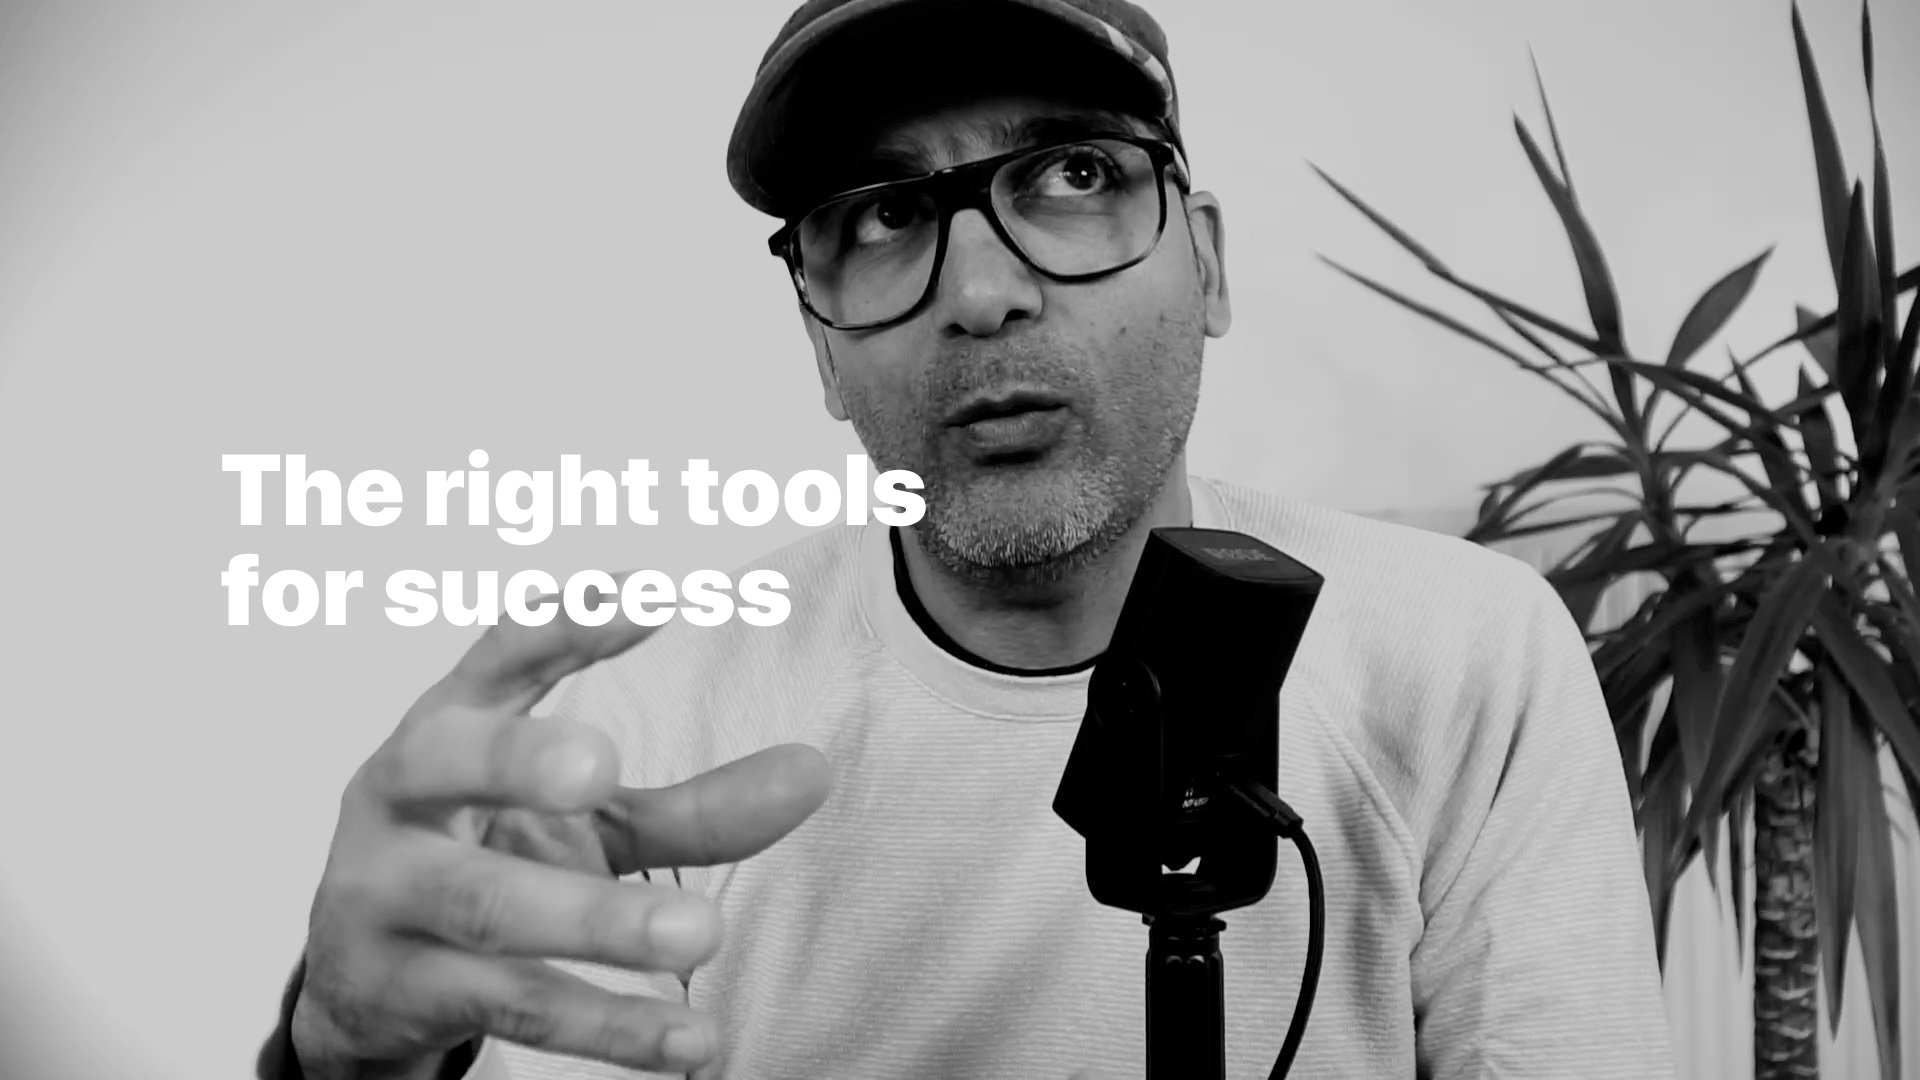 The right tools for success